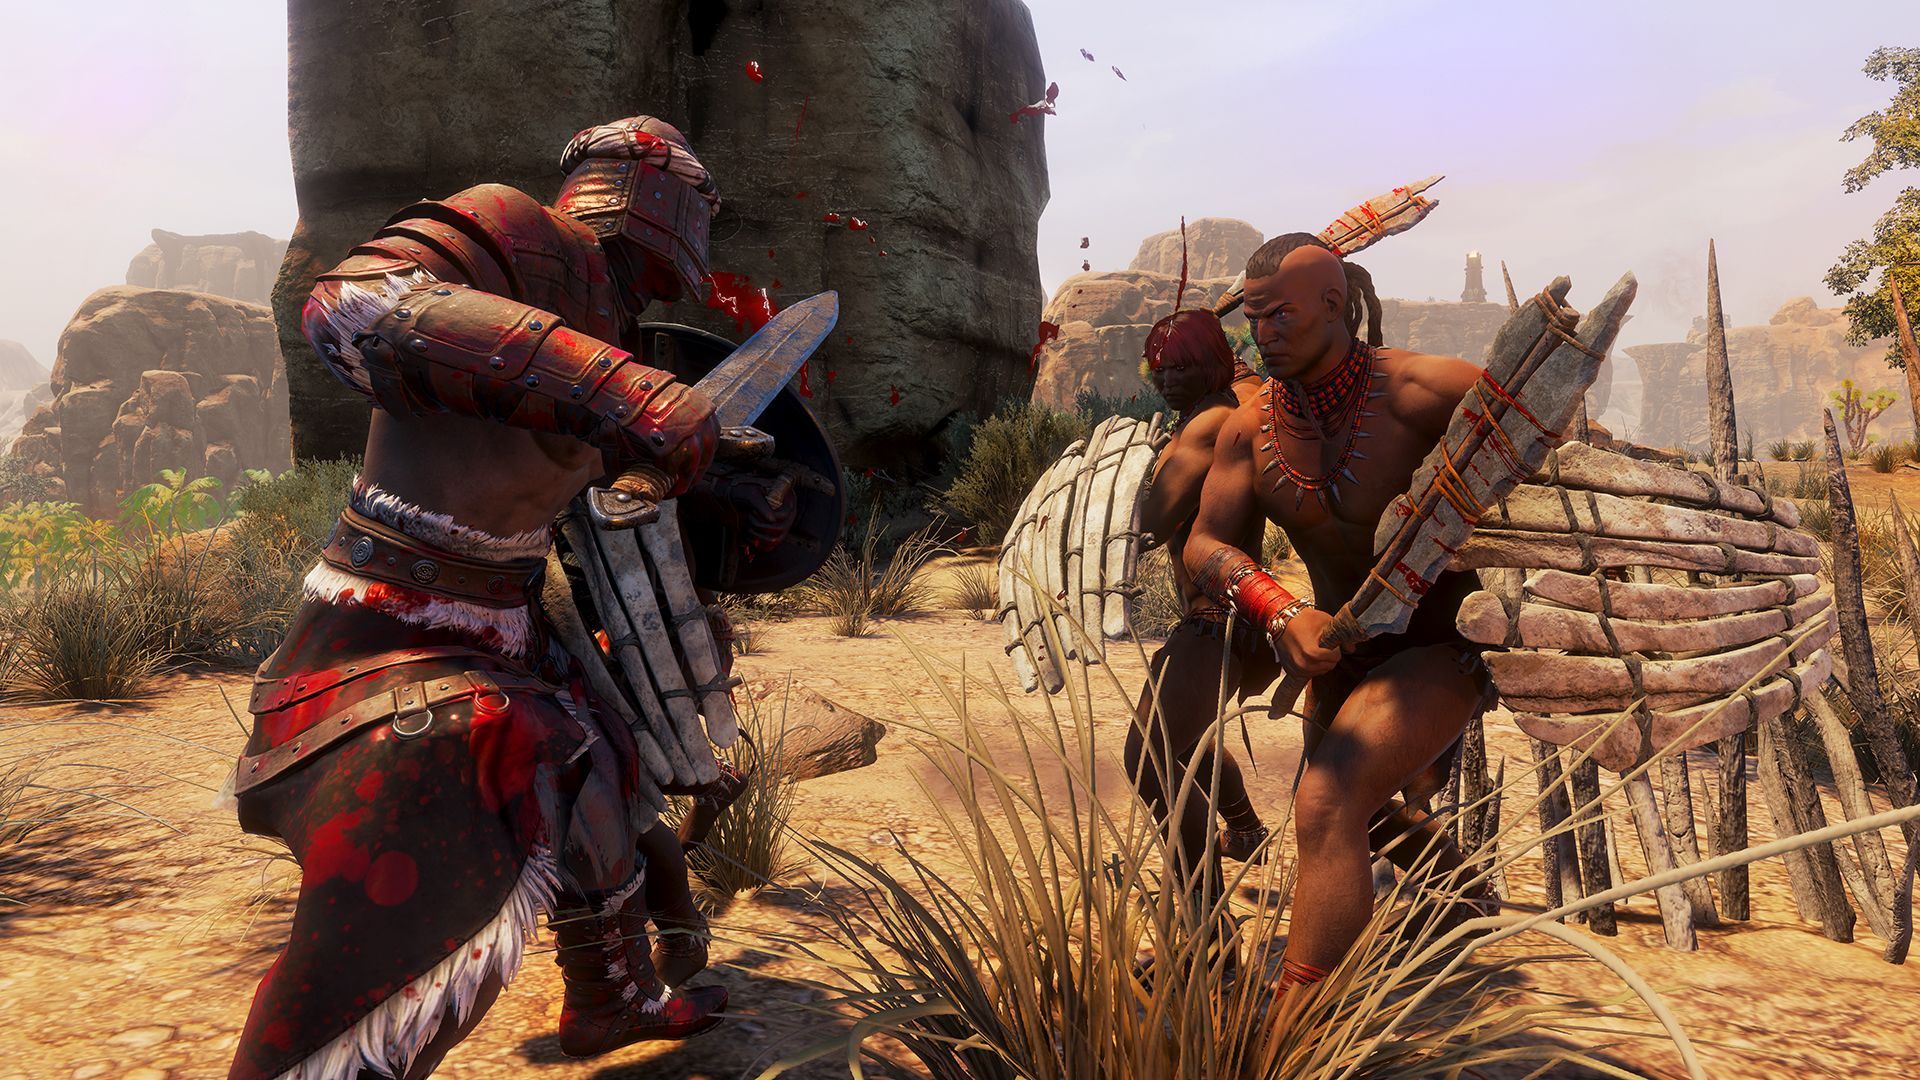 Conan Exiles is available on Steam Early Access.